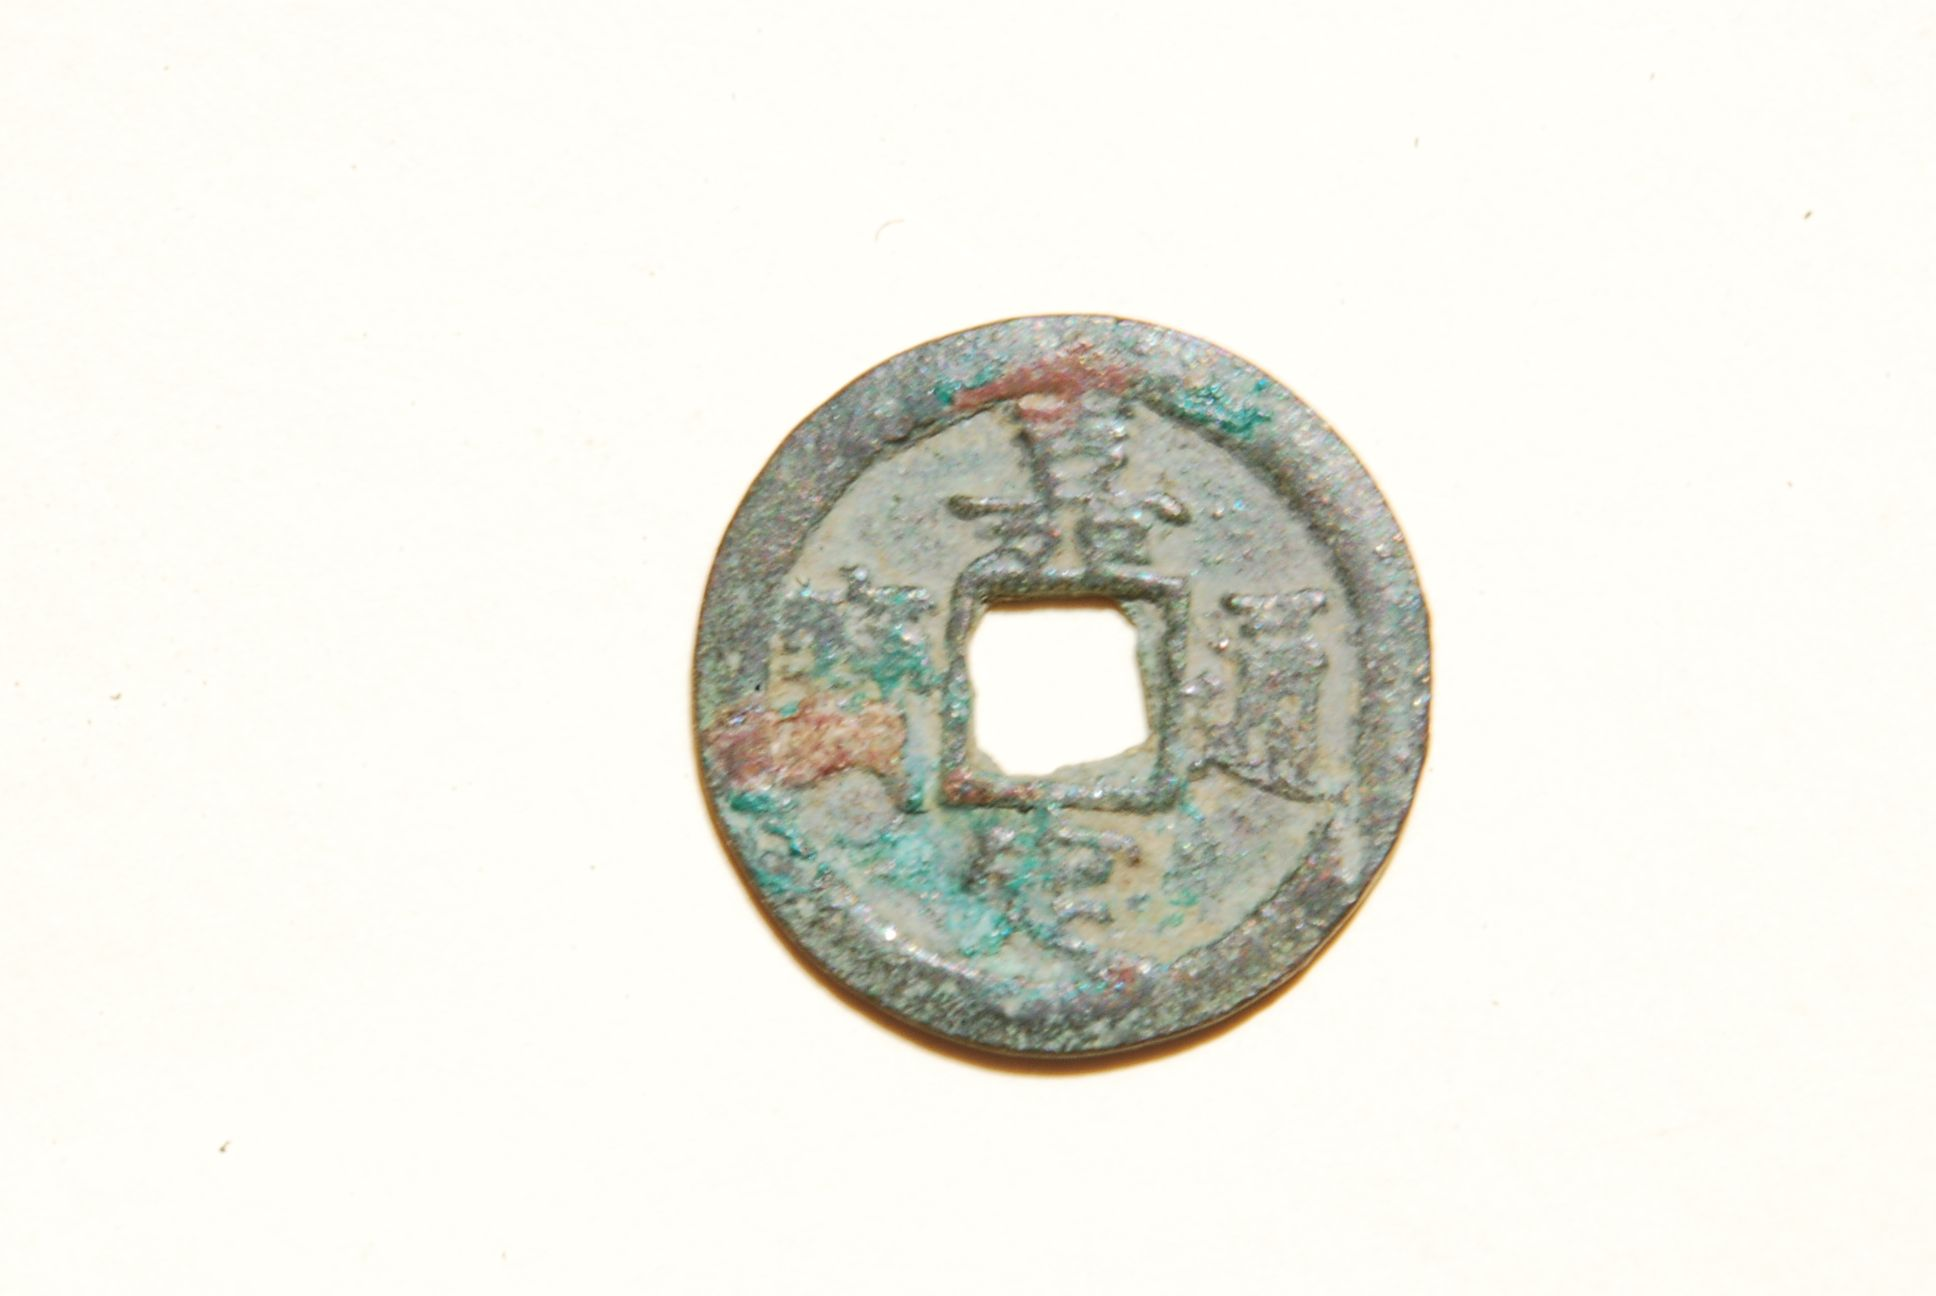 A 'Jia Ding Tong Bao' (嘉定通寶) 2 cash coin with orthodox script, cast in 1220 AD during the 'Jia Ding' reign title (1208-1224 AD) of Emperor Ningzong (寧宗) (1194–1224 AD), of the Southern Song (南宋) Dynasty (1127-1279 AD). The reverse side features the Chinese number '10' above the hole and the number '2' below, indicating the mint where the coin was cast, in the 12th year of the 'Jia Ding' reign of Emperor Ningzong. 29mm. S-900.